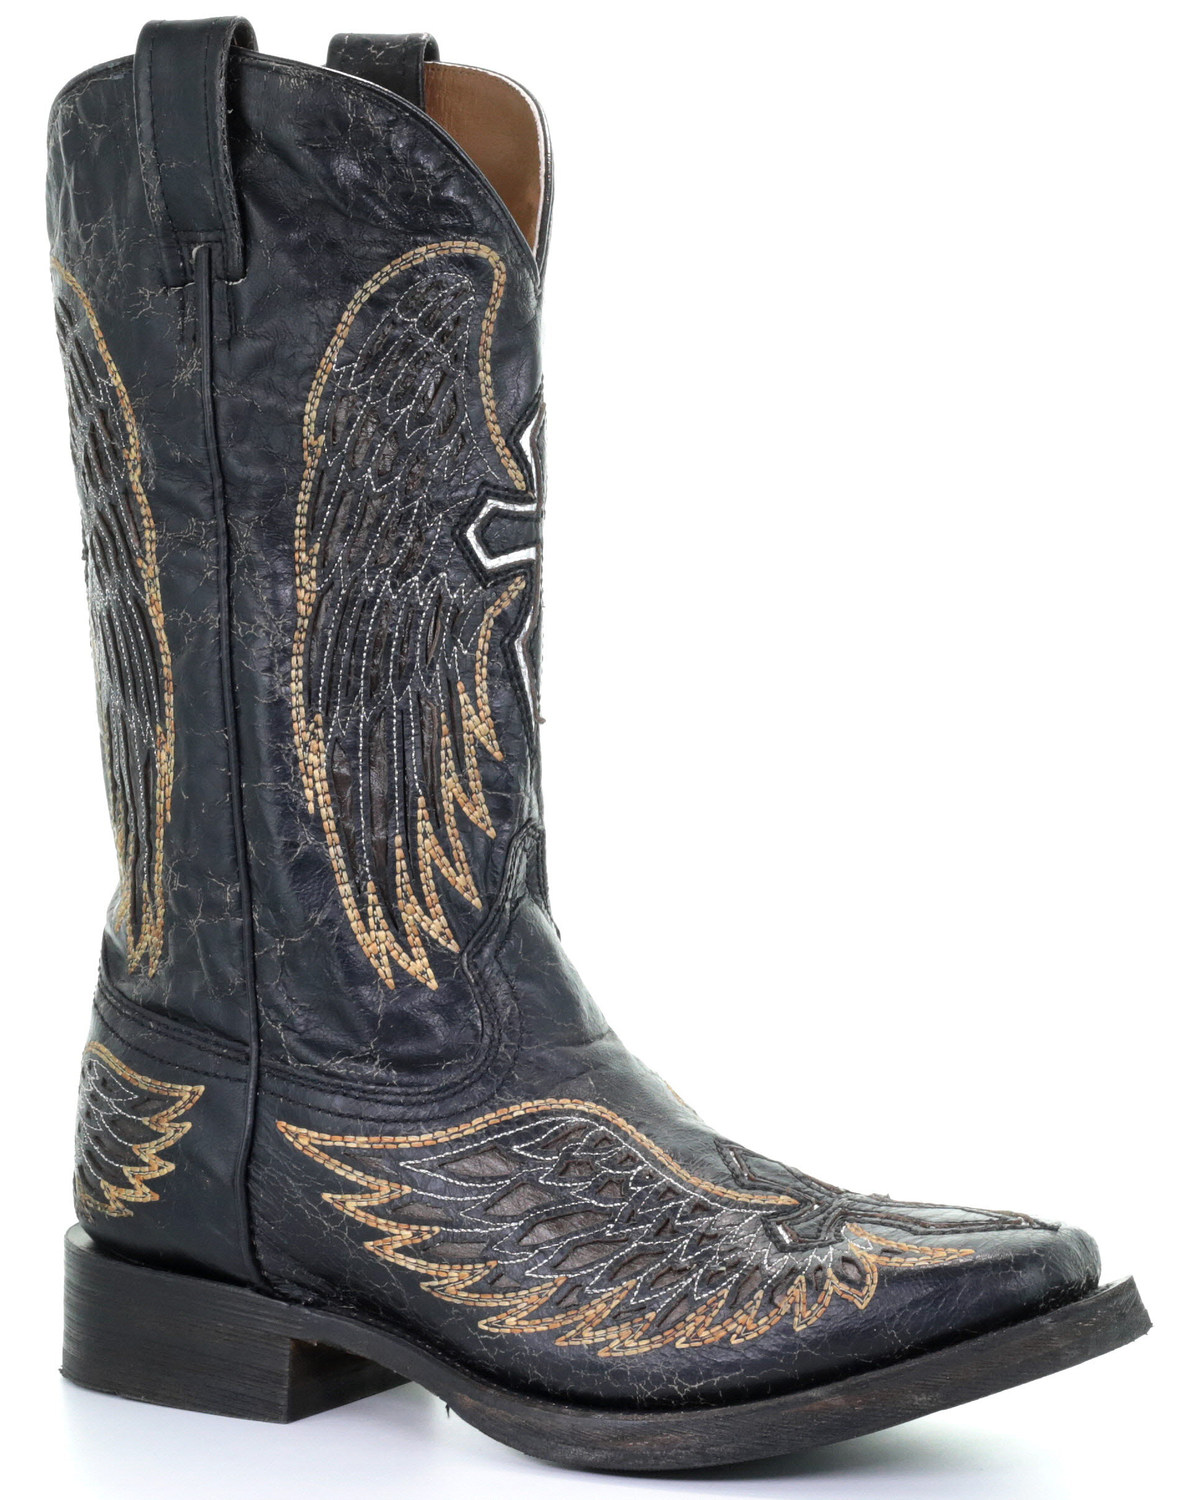 Corral Men's Wings & Cross Inlay Western Boots - Square Toe   Boot Barn